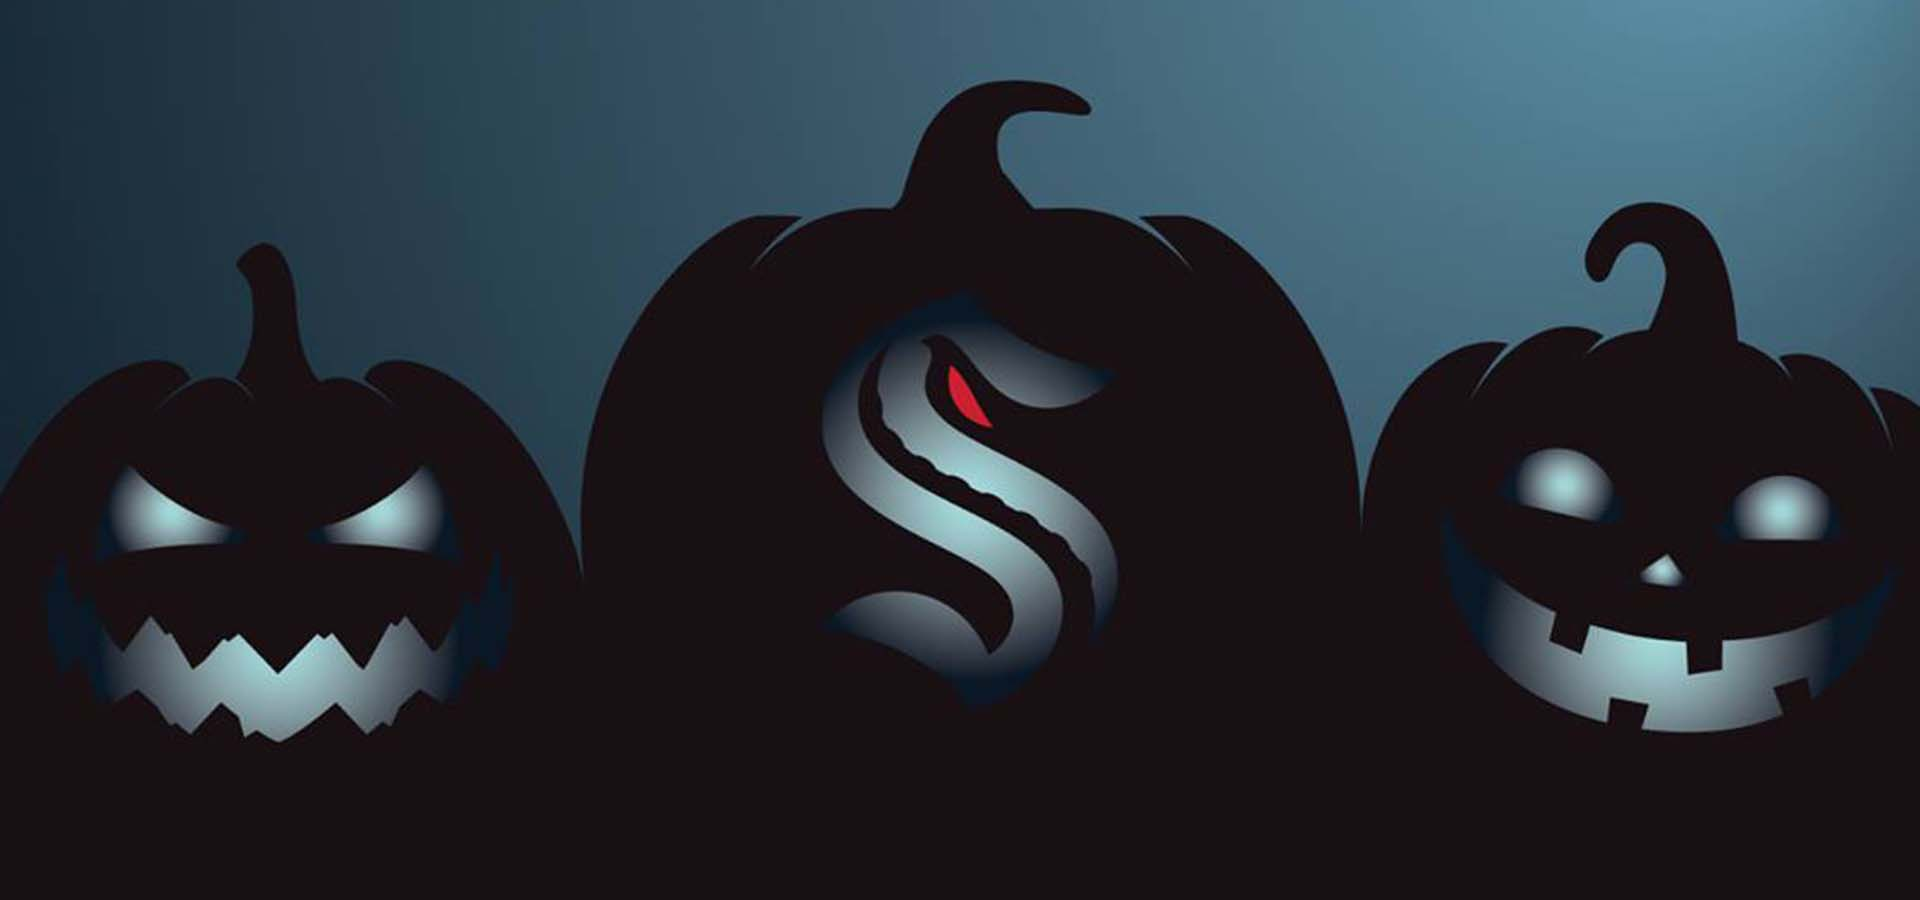 Night colors with black pumpkins carved with NHL Seattle Kraken logos in them